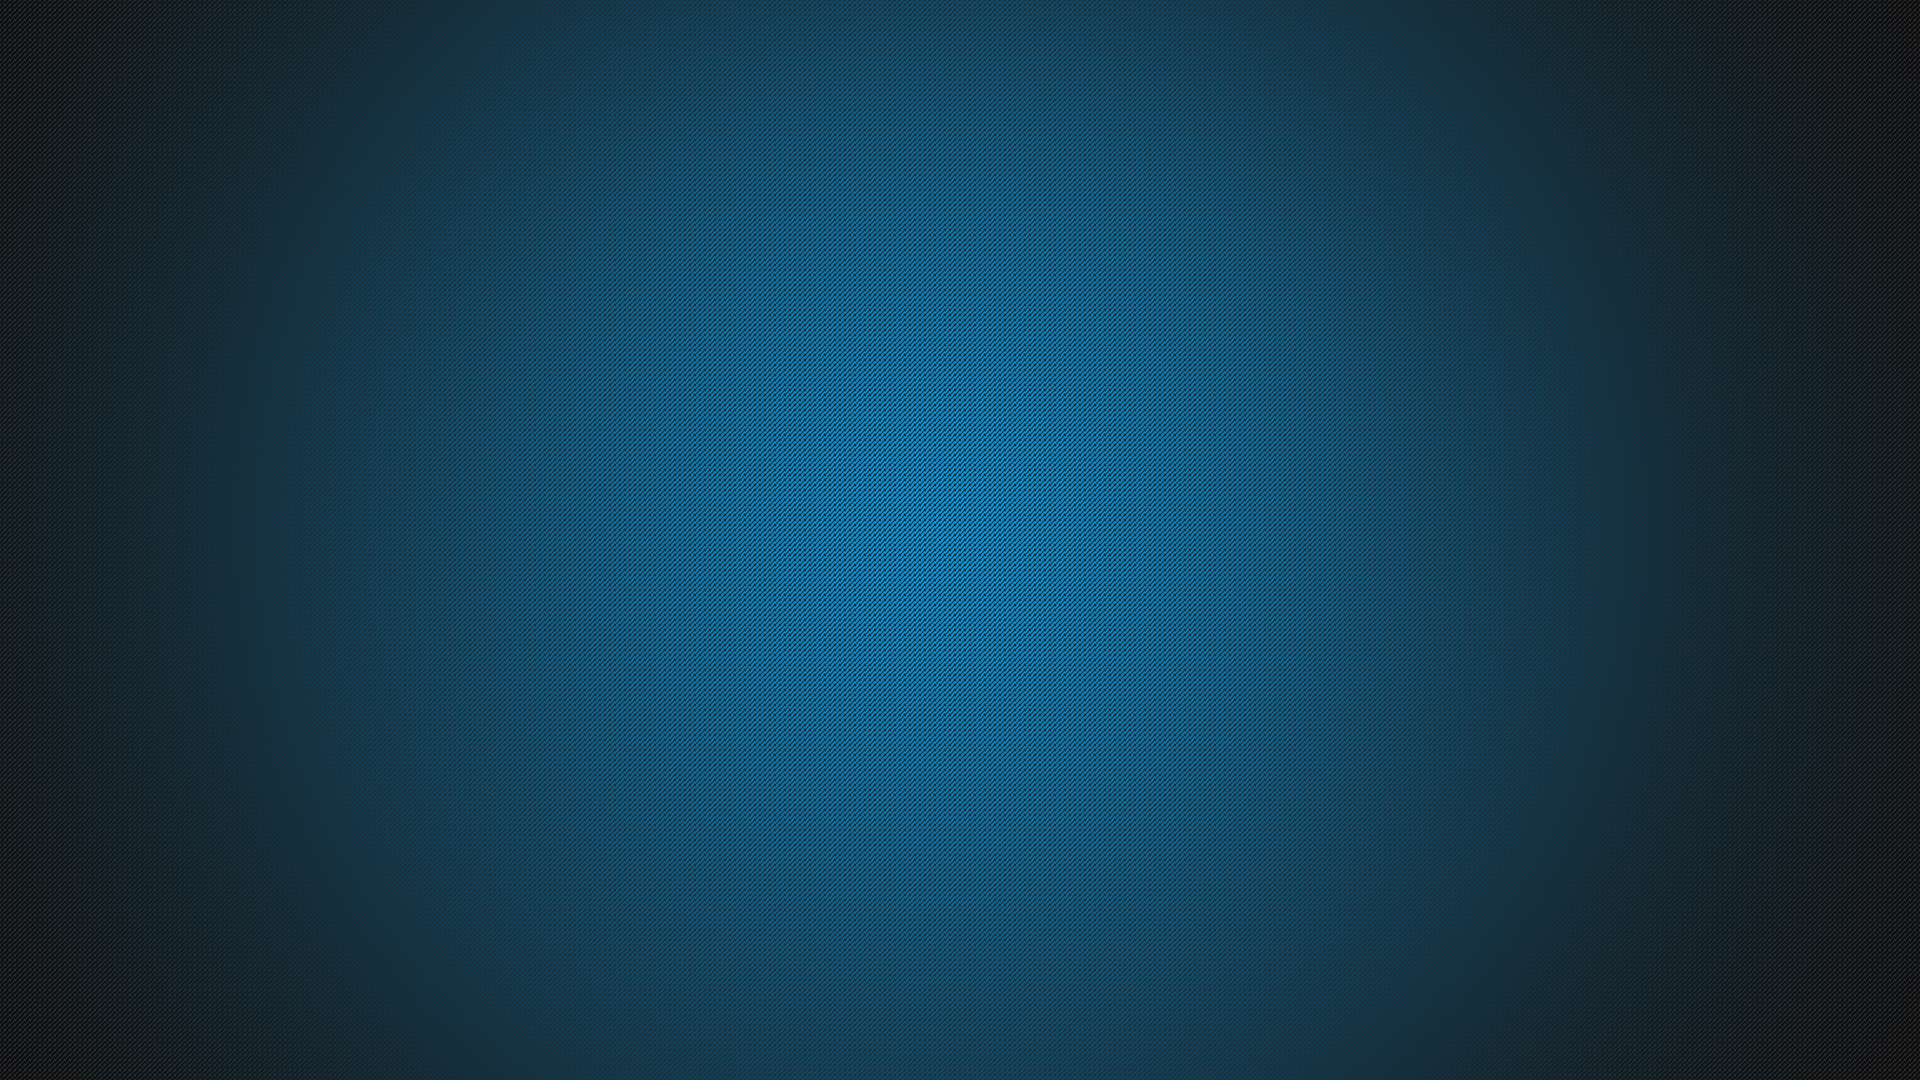 Black and Blue Wallpaper 1920x1080 by phantomghost1525 on ...